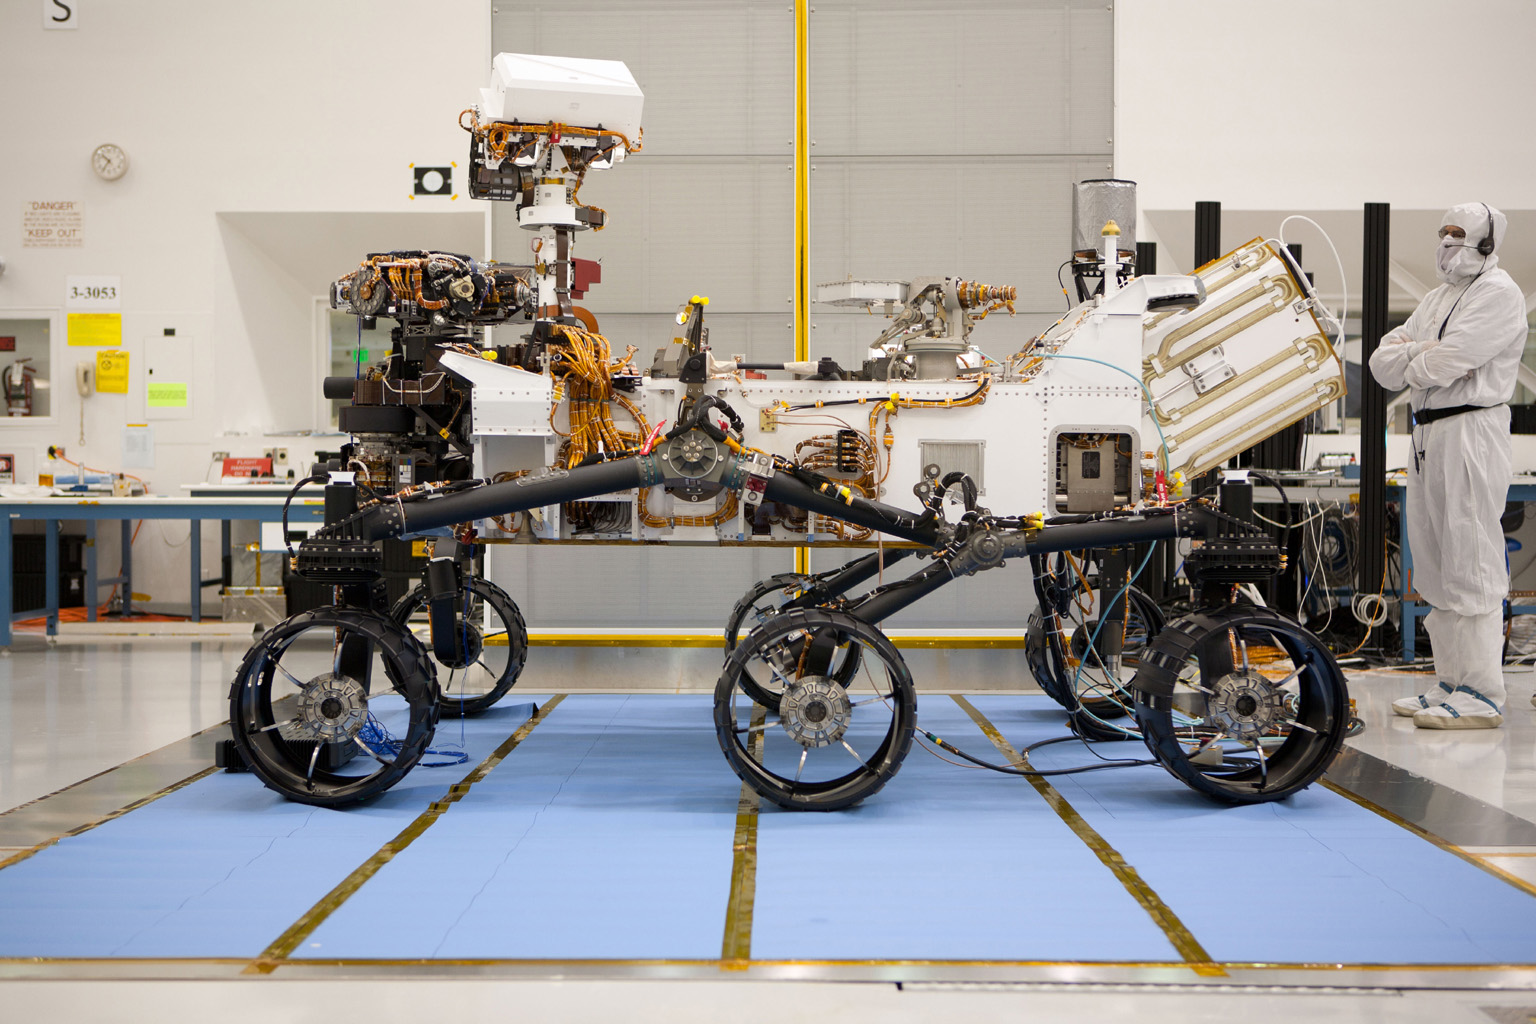 mars rover size-#19